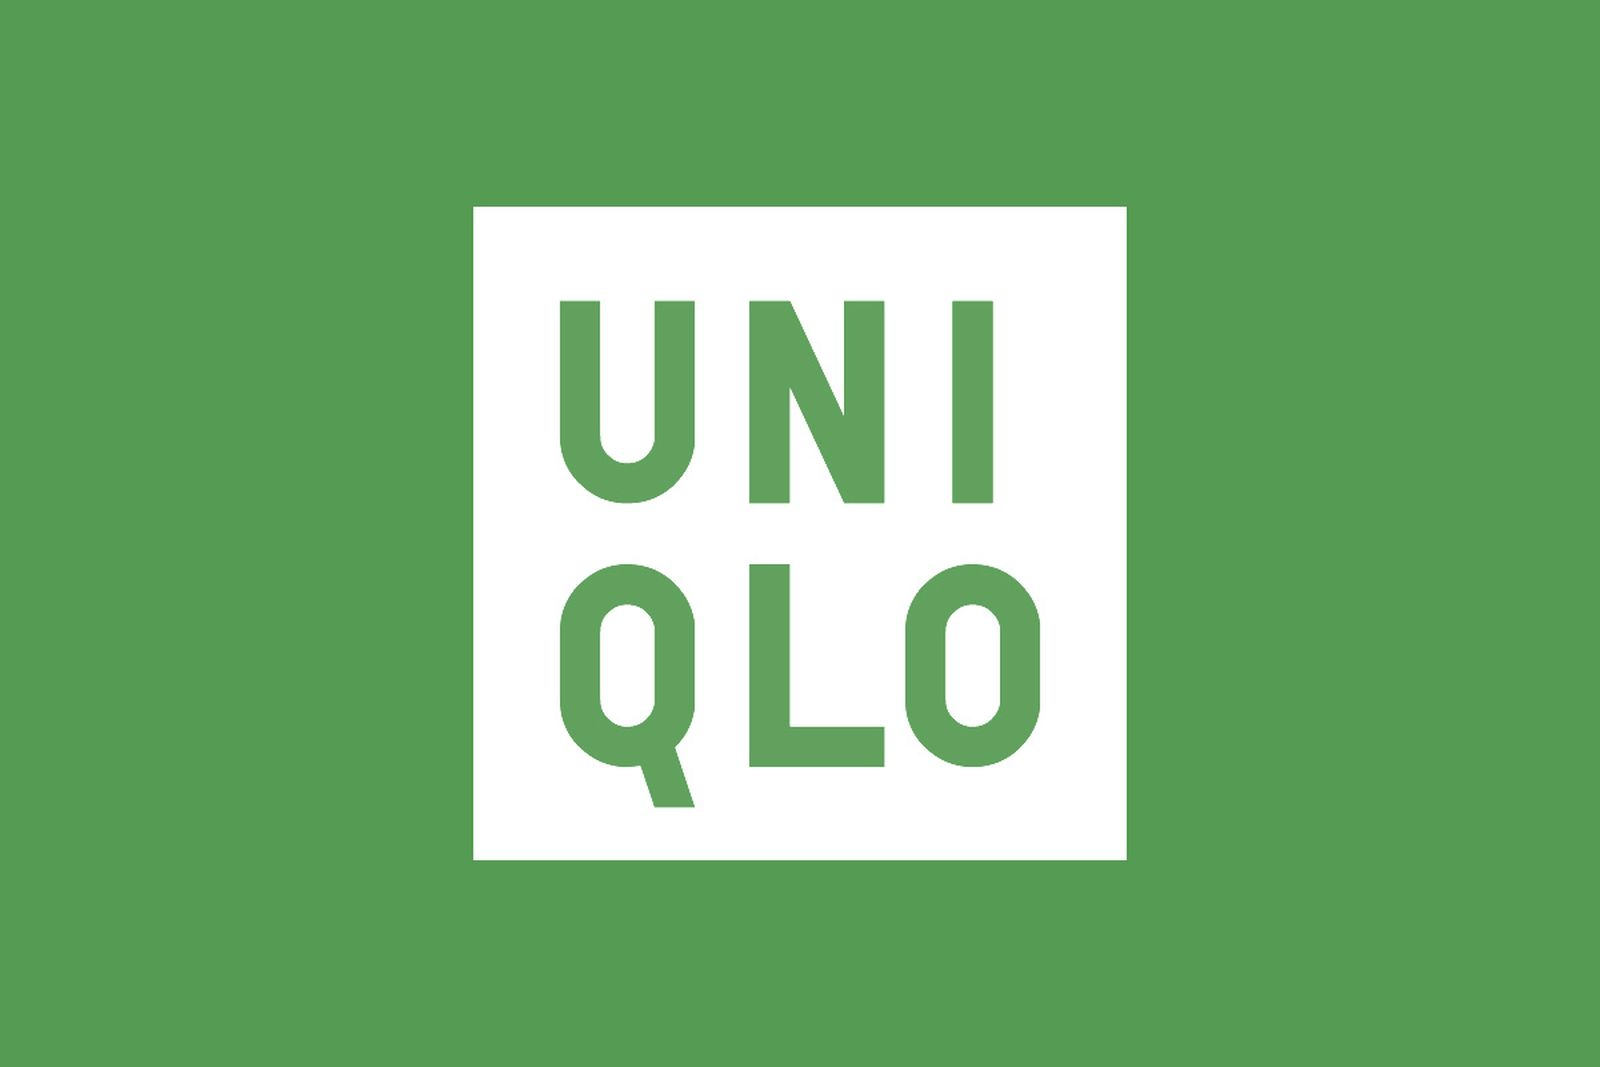 uniqlo-green-main